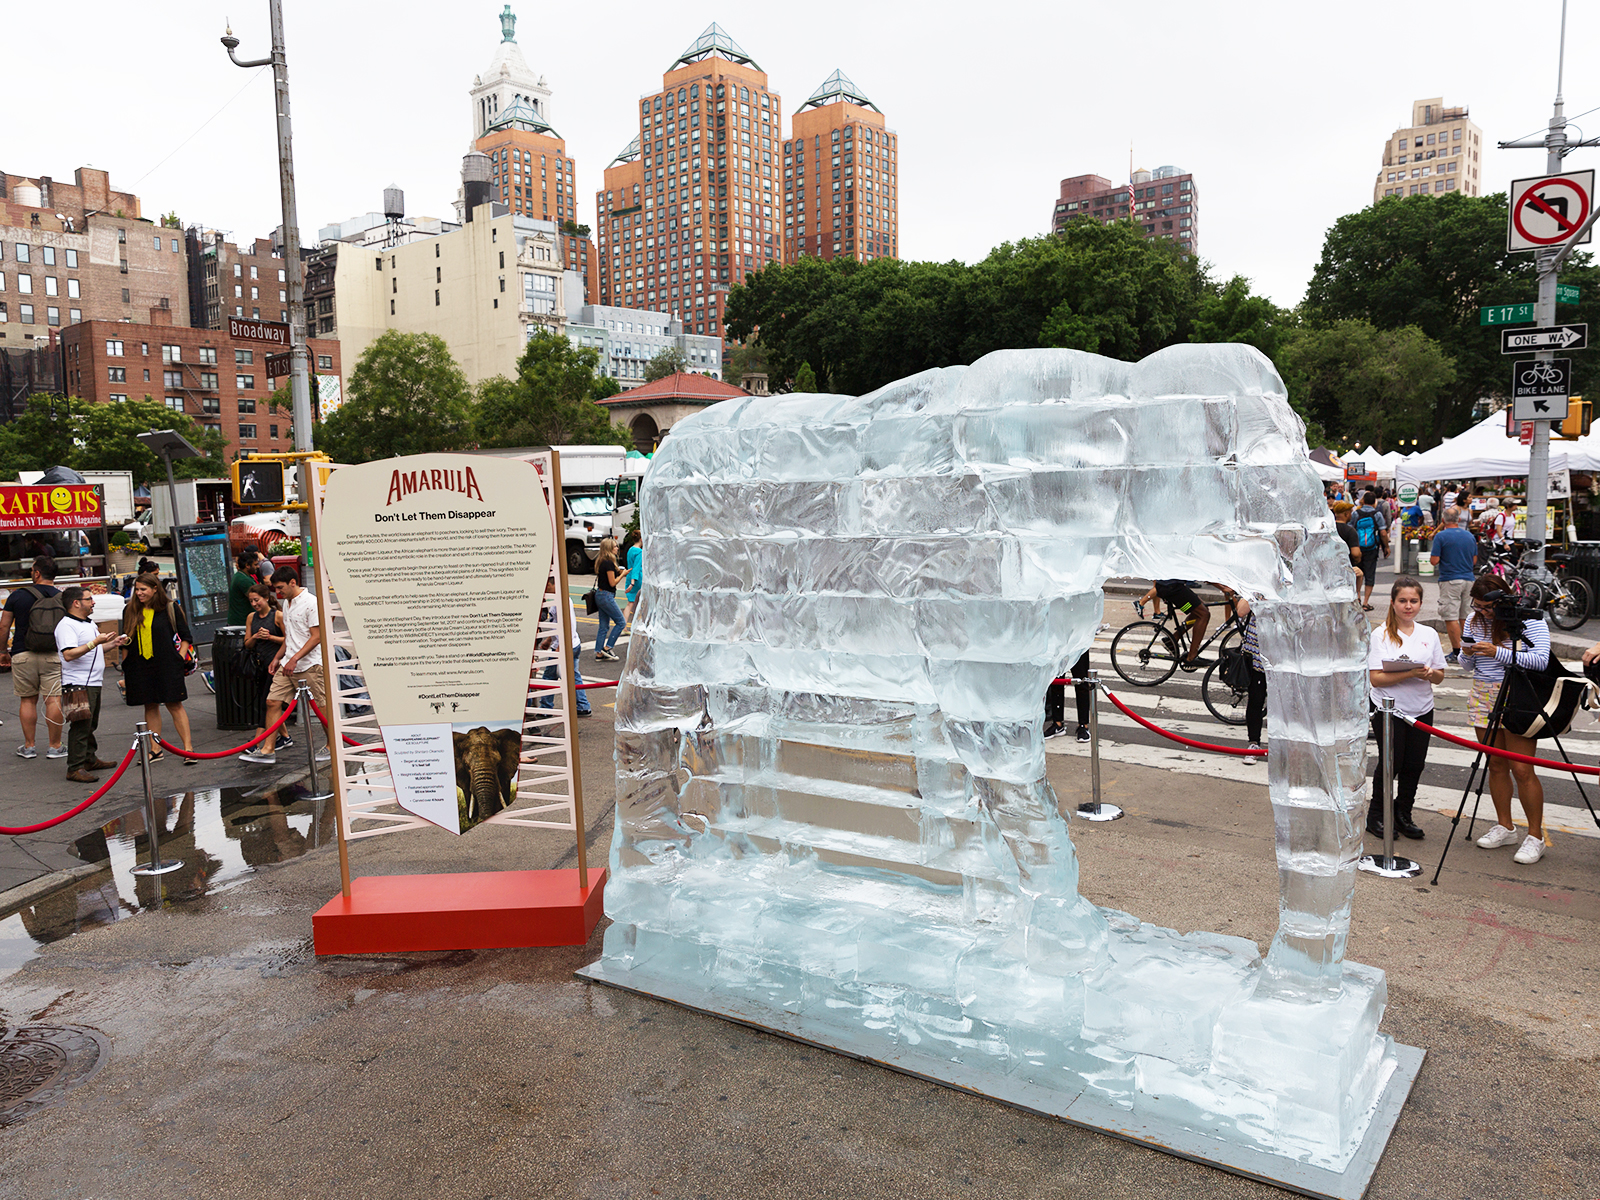 amarula ice sculpture in NYC